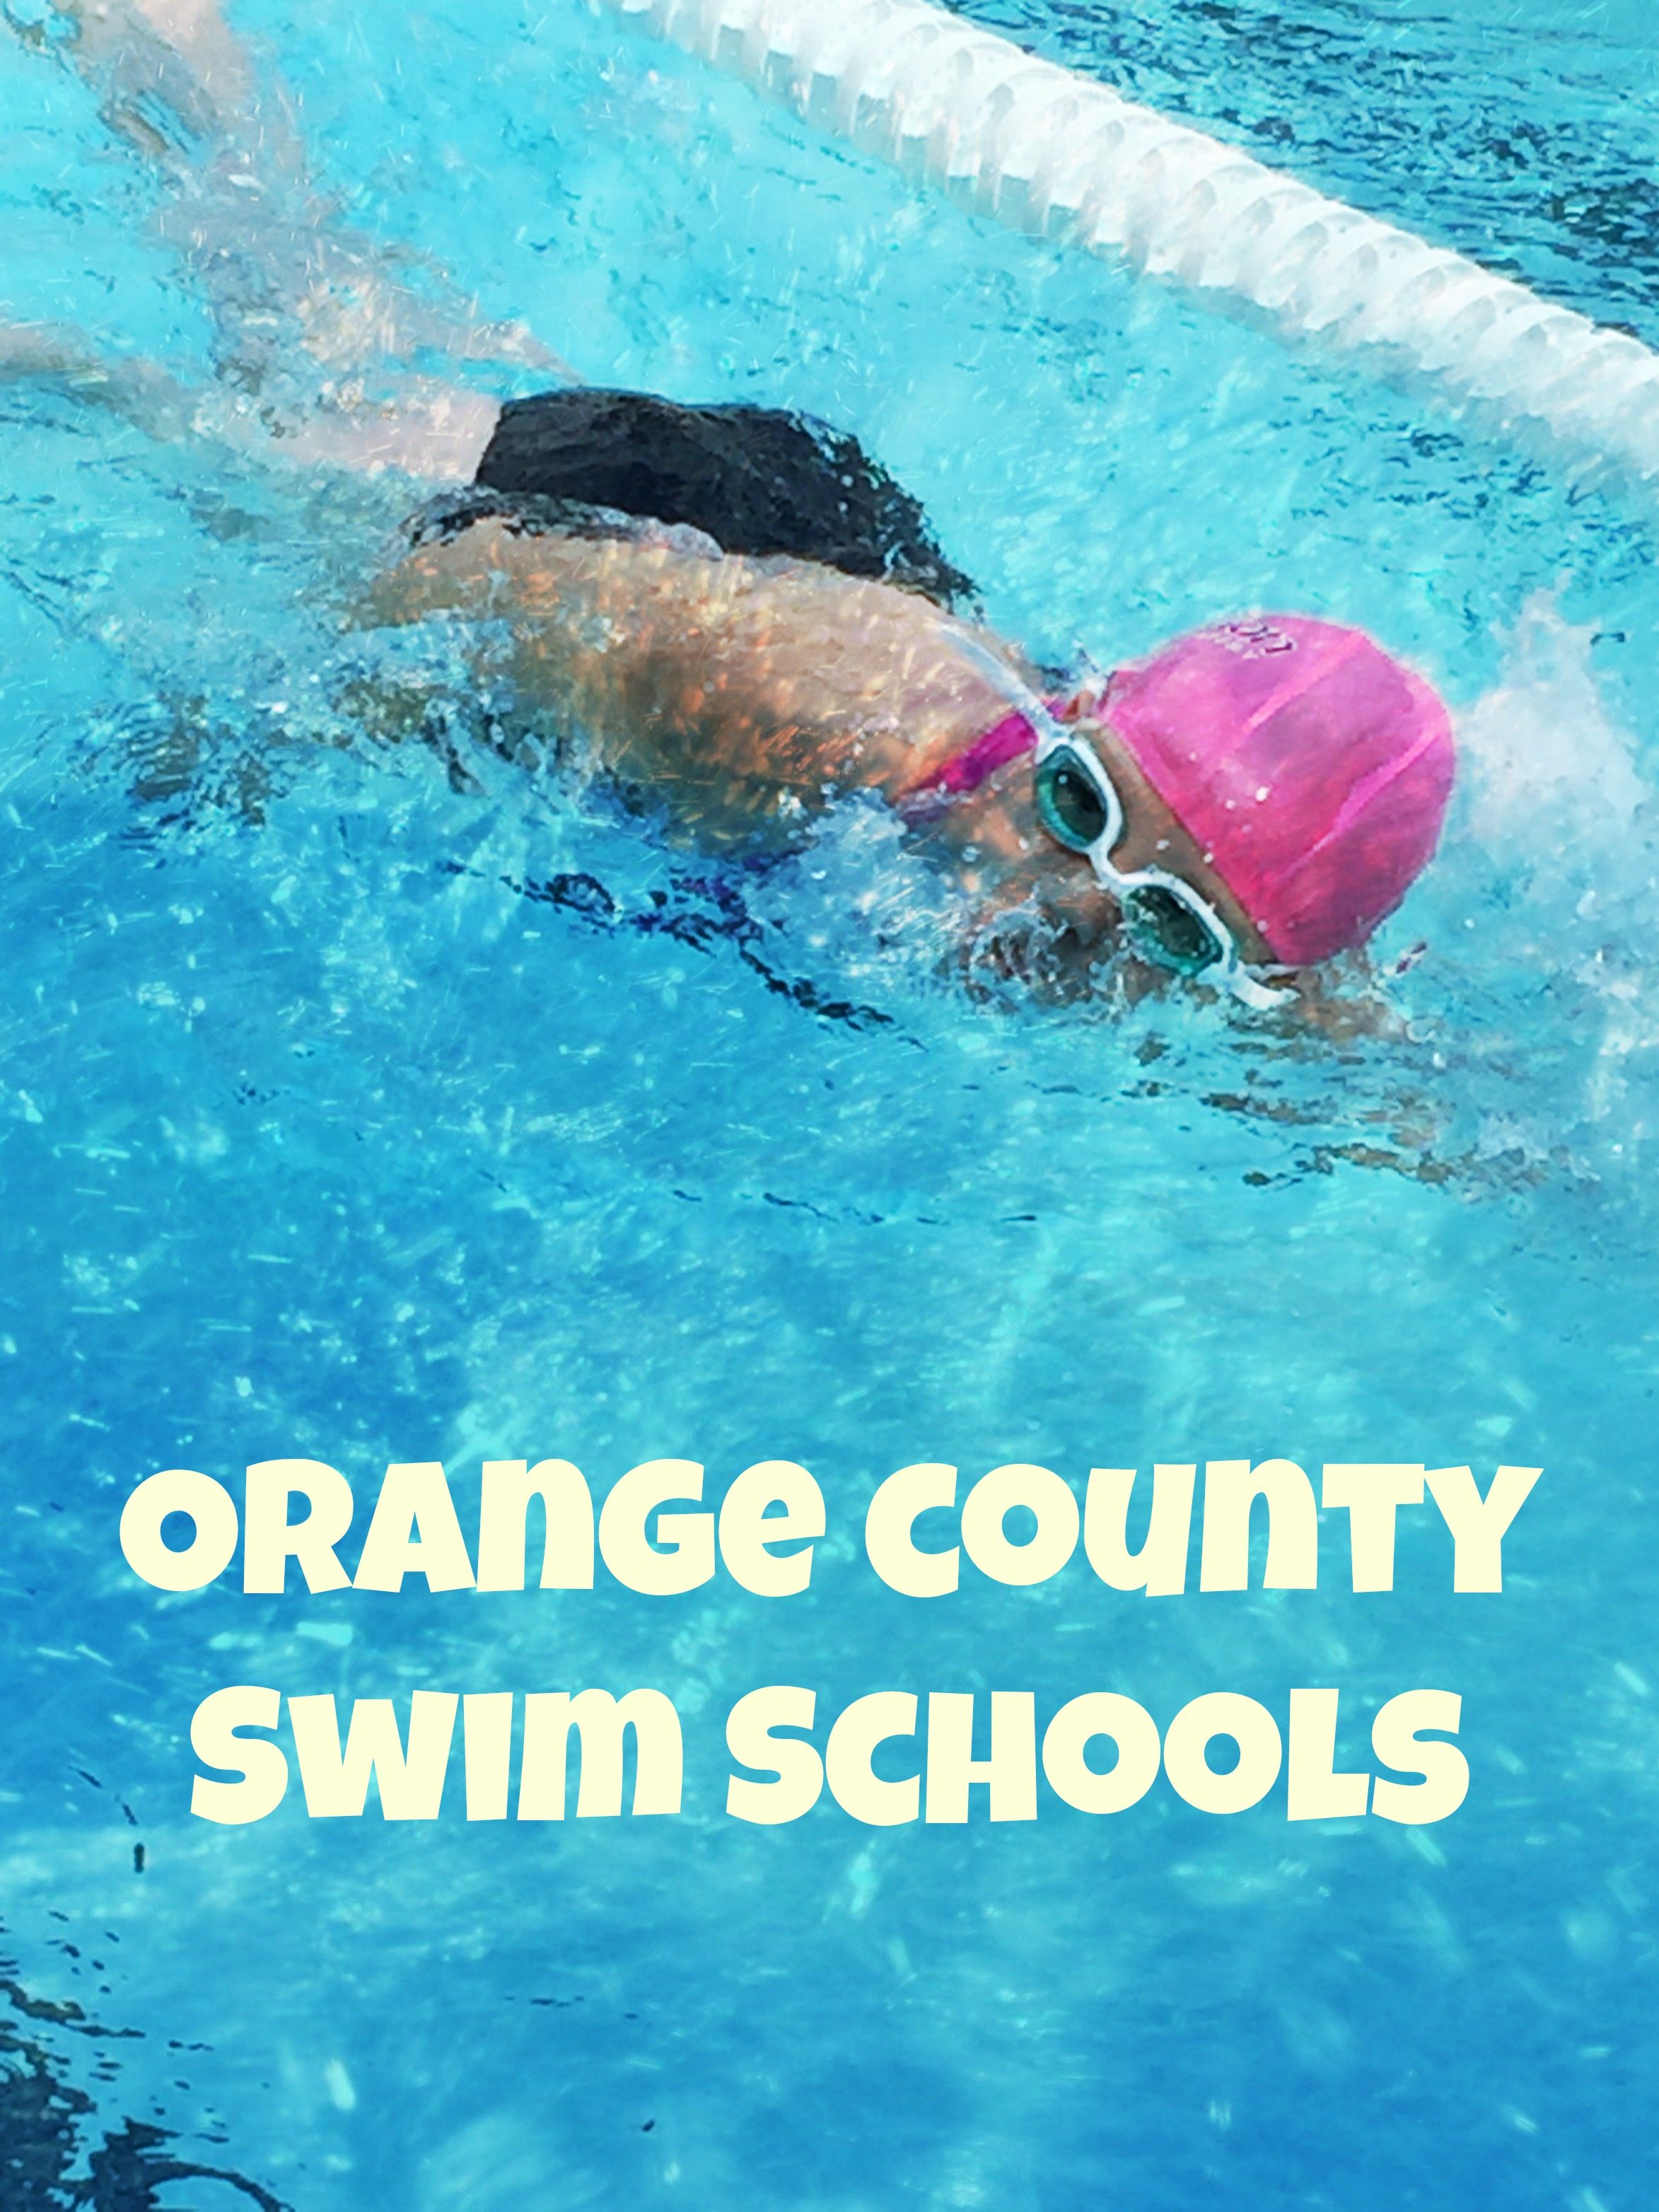 10 best places for swimming lessons in orange county oc mom blog 10 best places for swimming lessons in orange county 1betcityfo Image collections